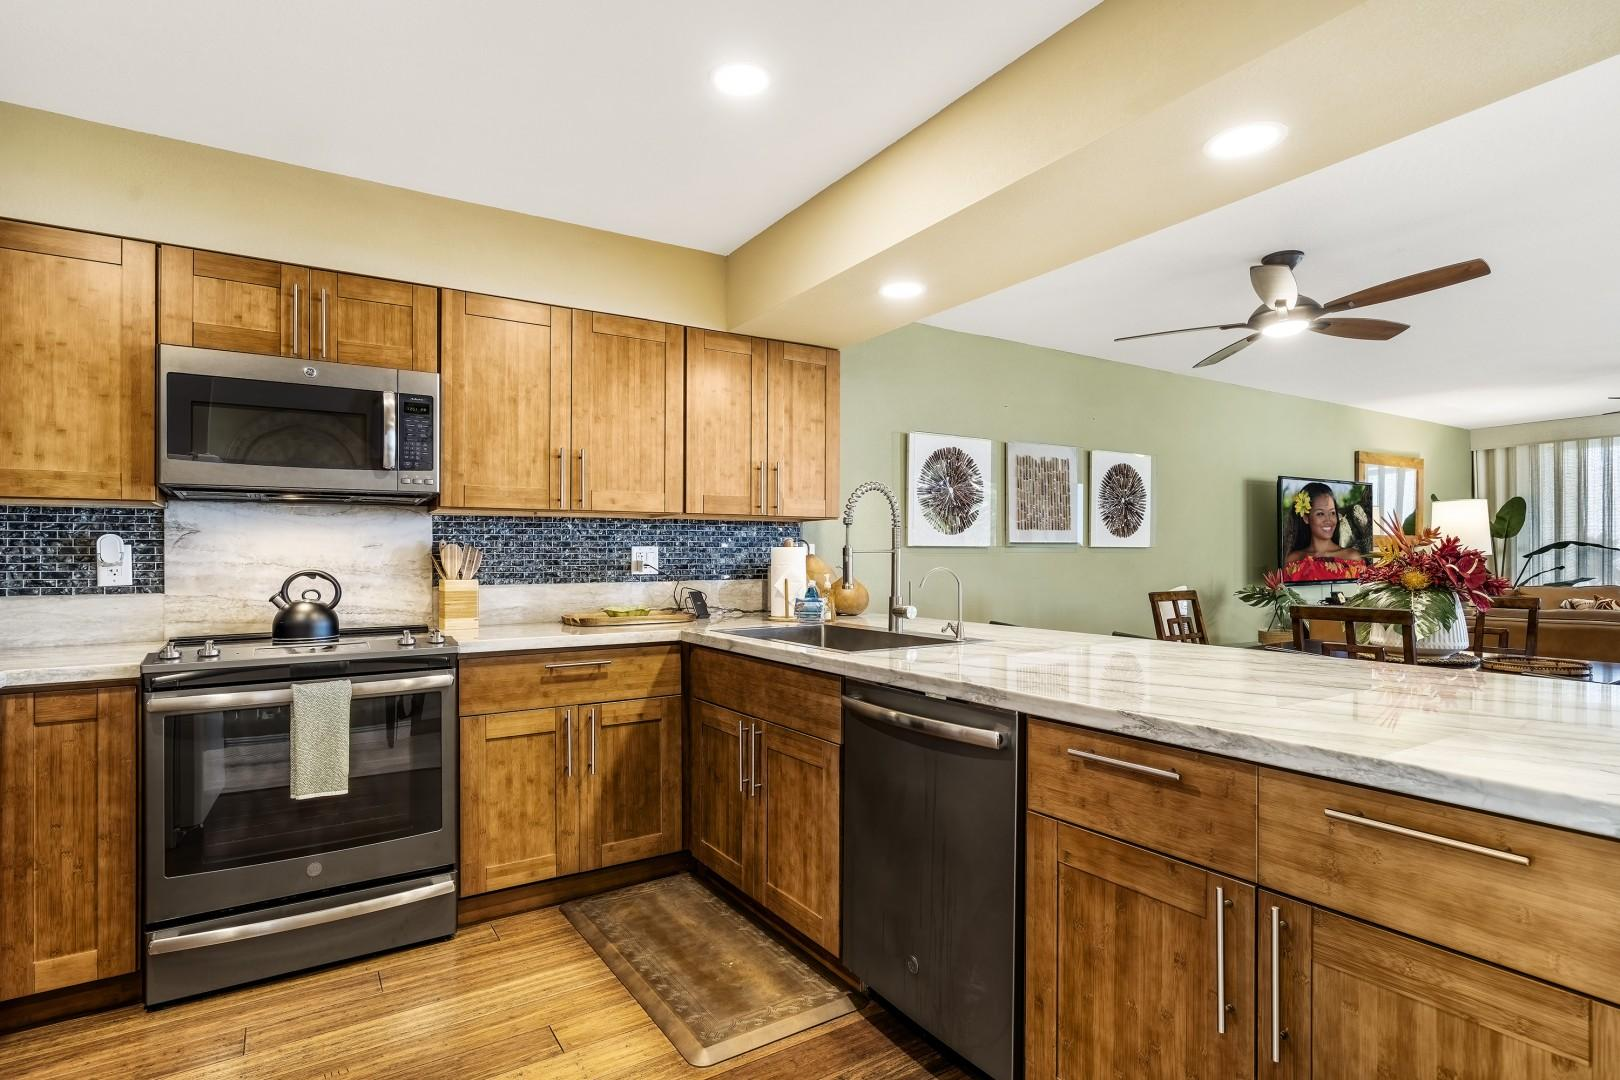 Fully renovated kitchen makes meal preparation a breeze!